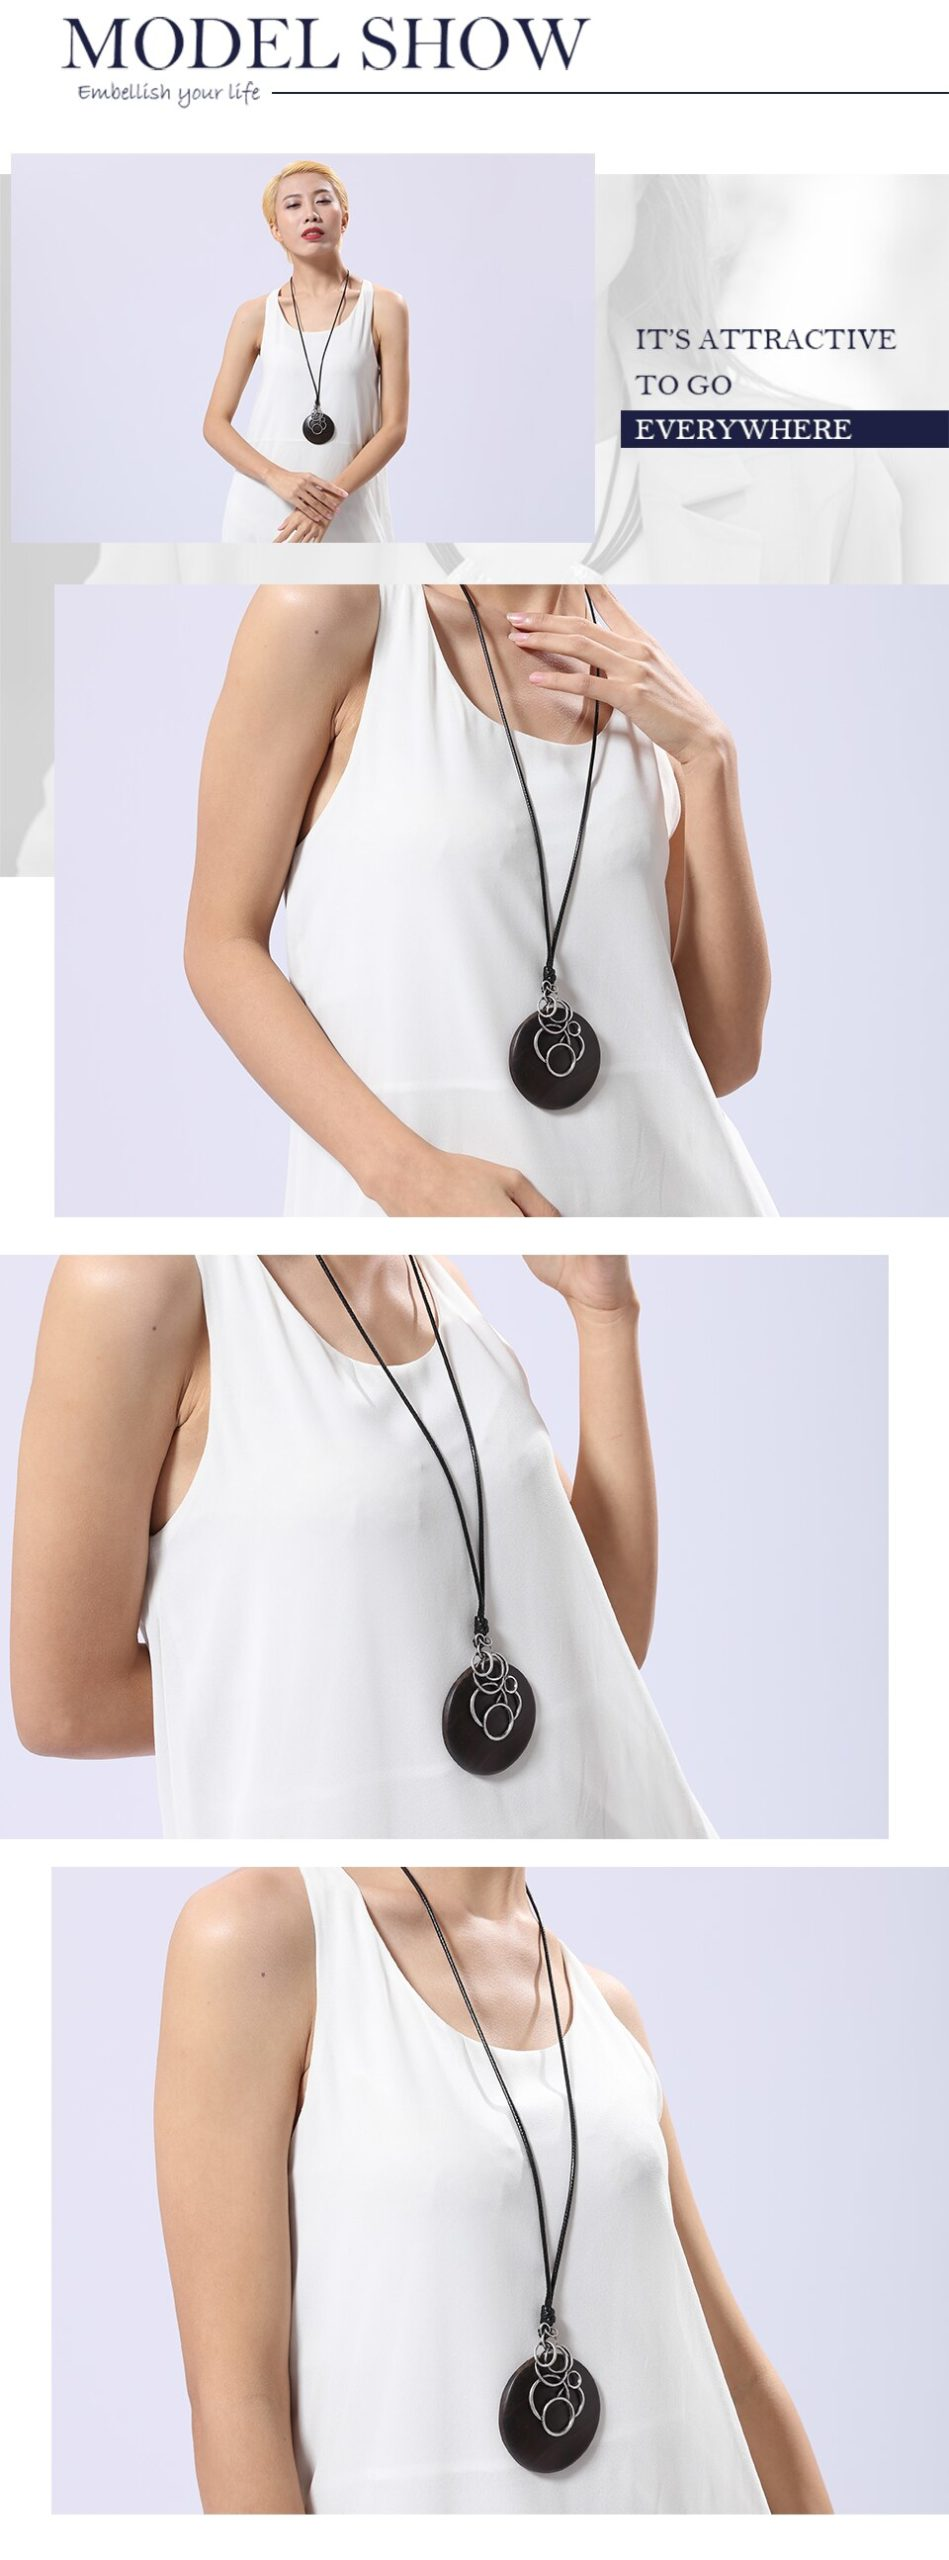 Simple Vintage Women Pendants & Necklaces Wooden Handmade Sandalwood Necklaces Sweater Rope Chain Women New Jewelry Accessories